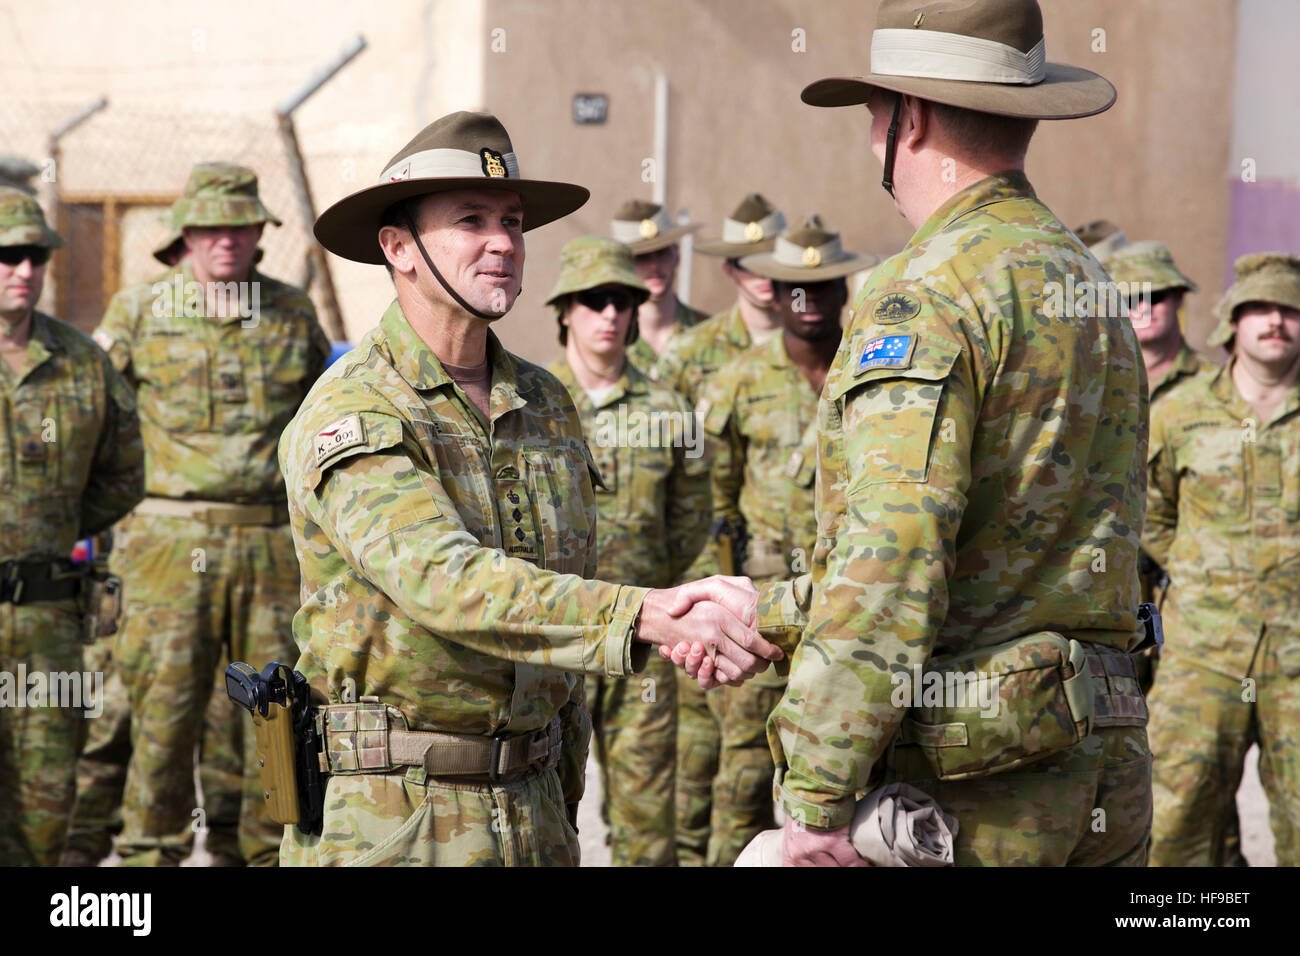 Australian officers shake hands during a transfer of authority ceremony at Camp Taji December 8, 2016 near Al Taji, - Stock Image